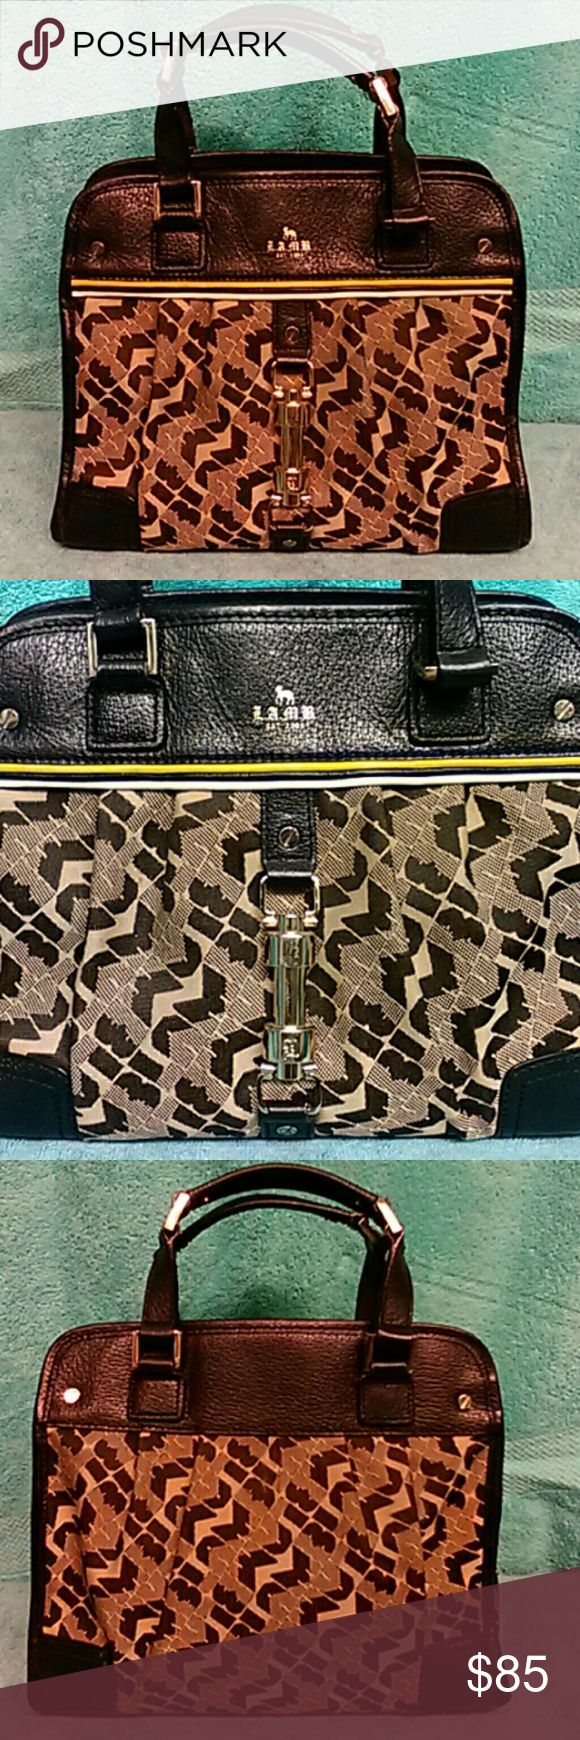 Authentic LAMB Signature Satchel Authentic Rare LAMB Signature Satchel. Leather trim, Beautiful goldtone hardware, fully lined with zipper compartment. Excellent condition. Lamb Bags Satchels